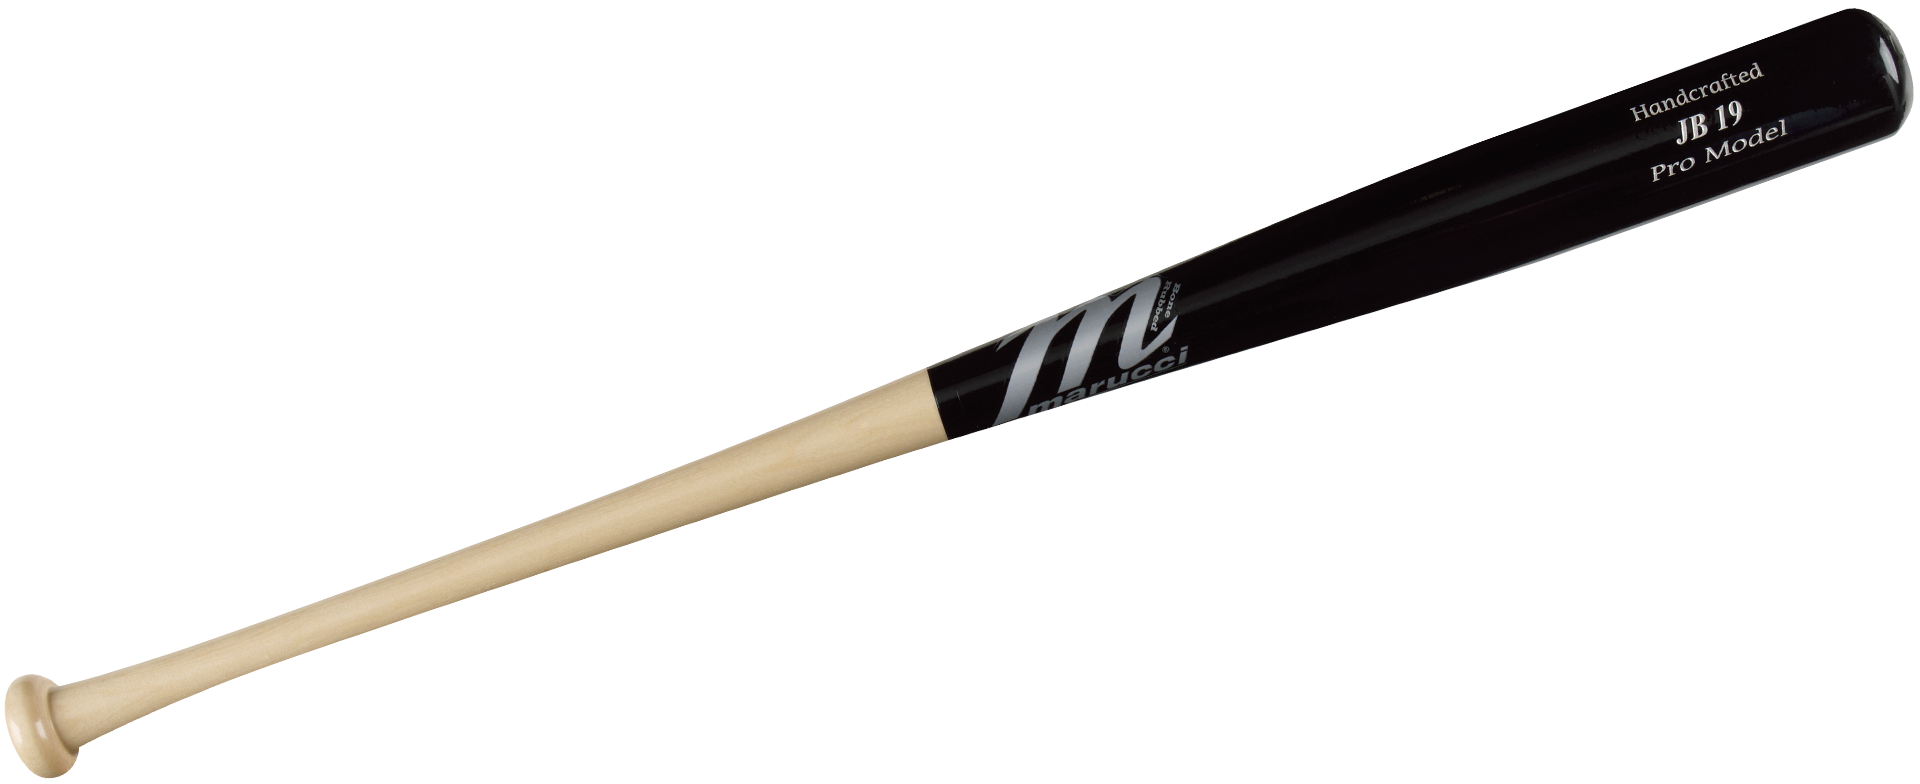 maple pro model baseball bat wood bats clipart 20671